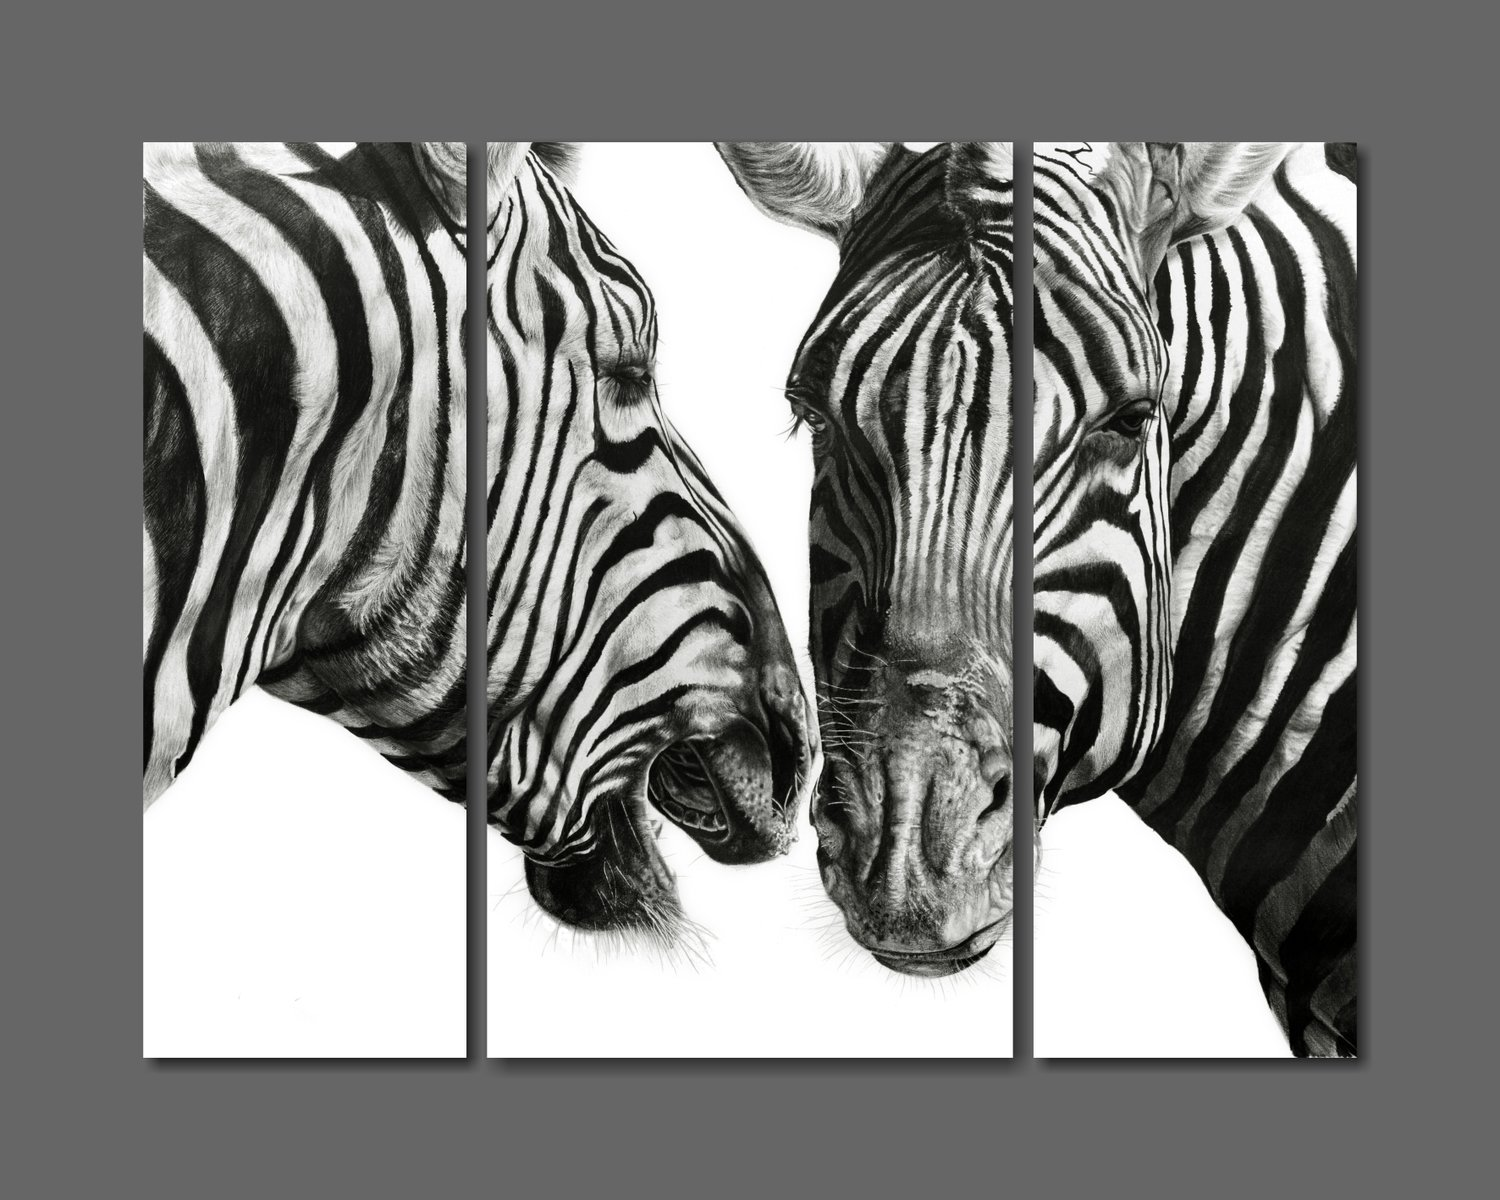 """Zebra Gossip"" 1180mm x 890mm composite print on canvass"